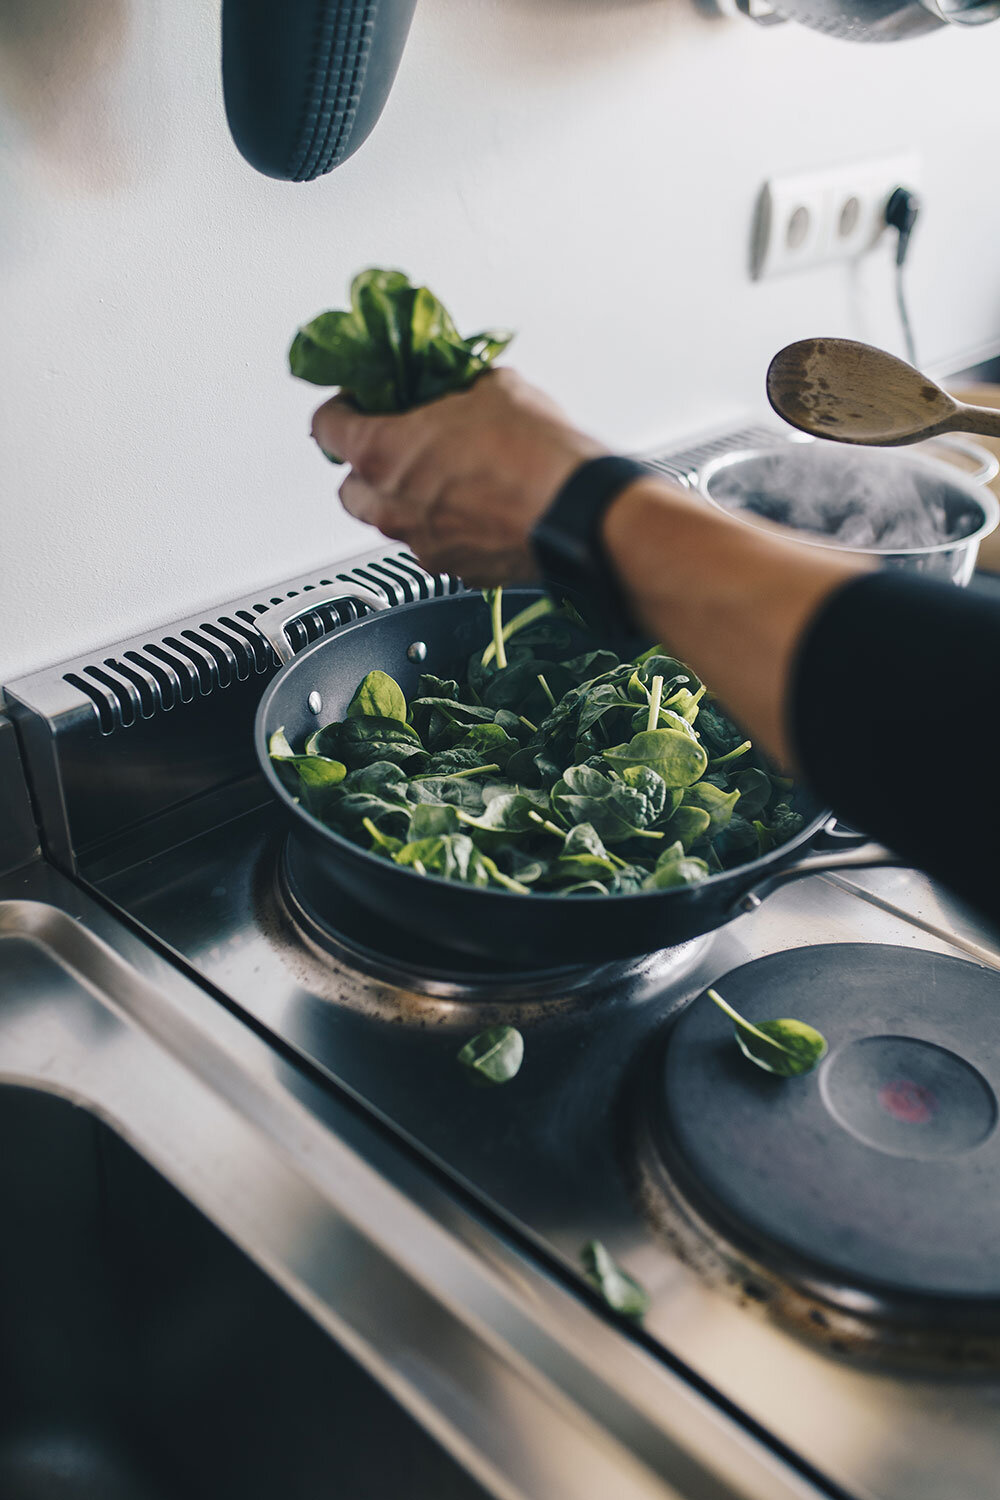 3. - Add to that your spinach and spread it around in the pan, until it's well done. Stir regularly! Take the lid off the pan at the end when you're cooking on high heat.